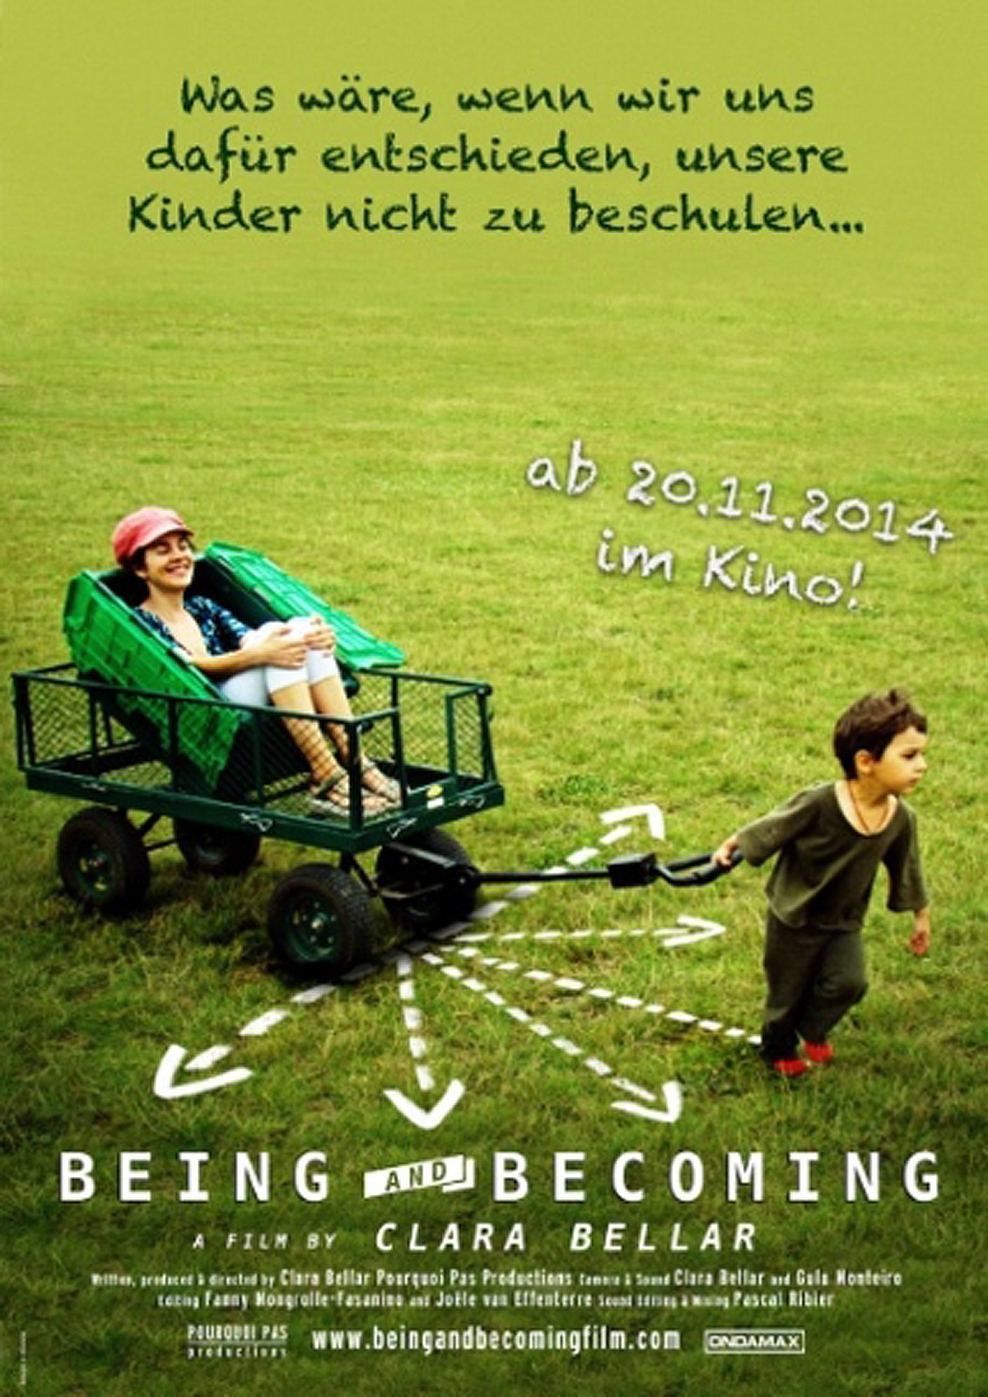 Being and Becoming (Poster)